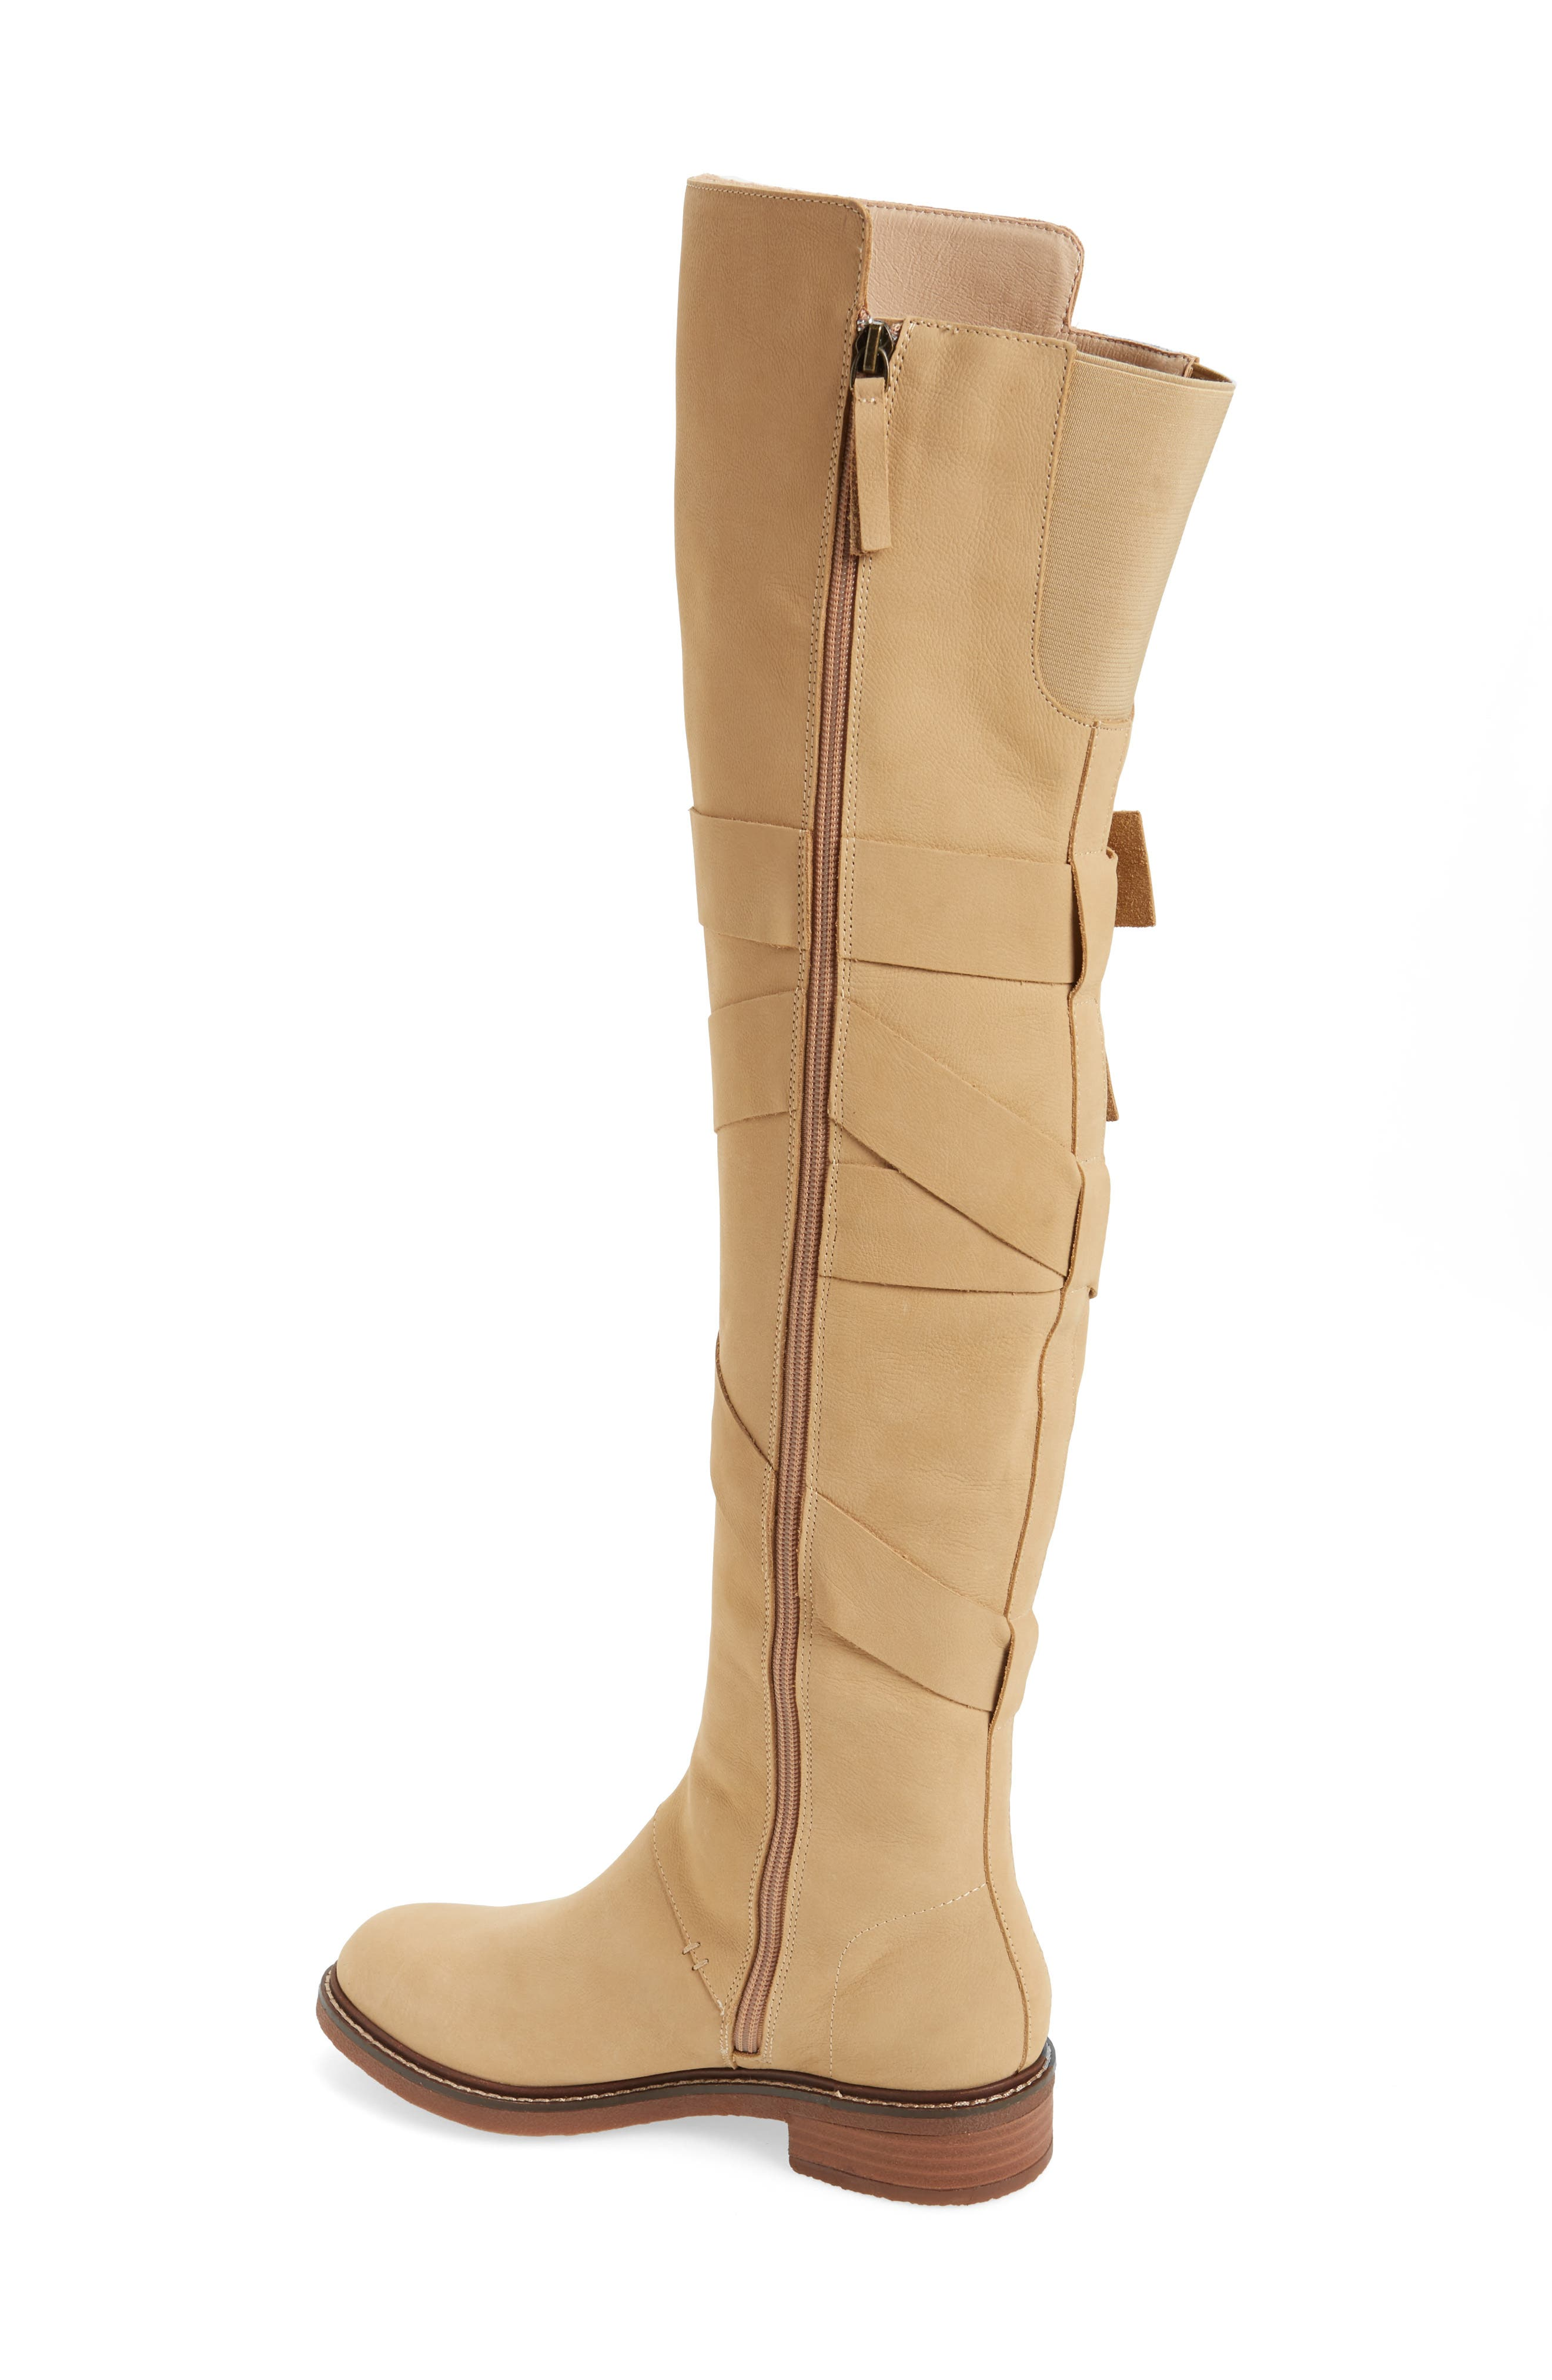 Colby Over the Knee Boot,                             Alternate thumbnail 2, color,                             Ginger